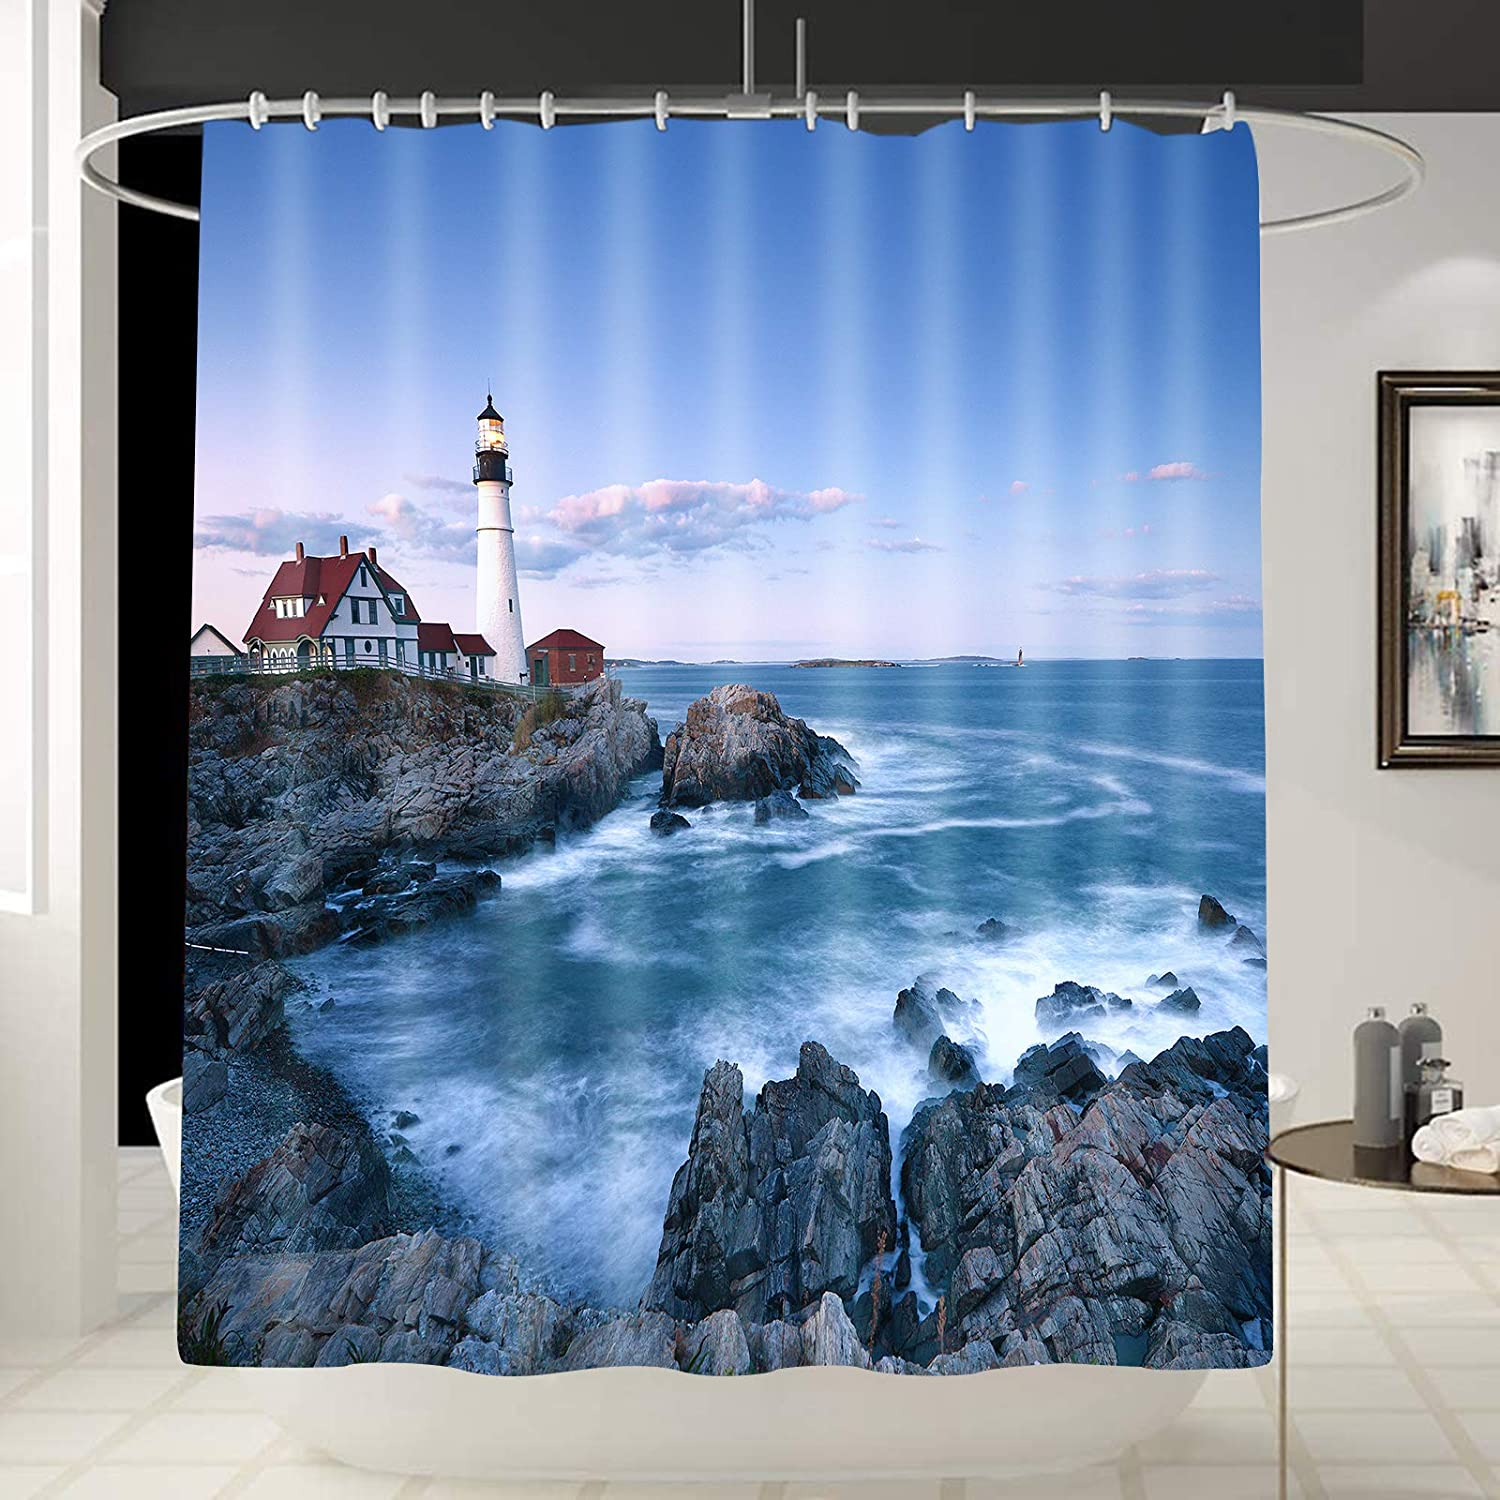 Seascape Wall Decor Portland Head Lighthouse Shower Curtain Liner Paintings Landscape Artwork Tropical Ocean Art Curtain for Bathroom/Washroom with 12 Hooks Waterproof Man/Boy Gift 70 x 70 Inches